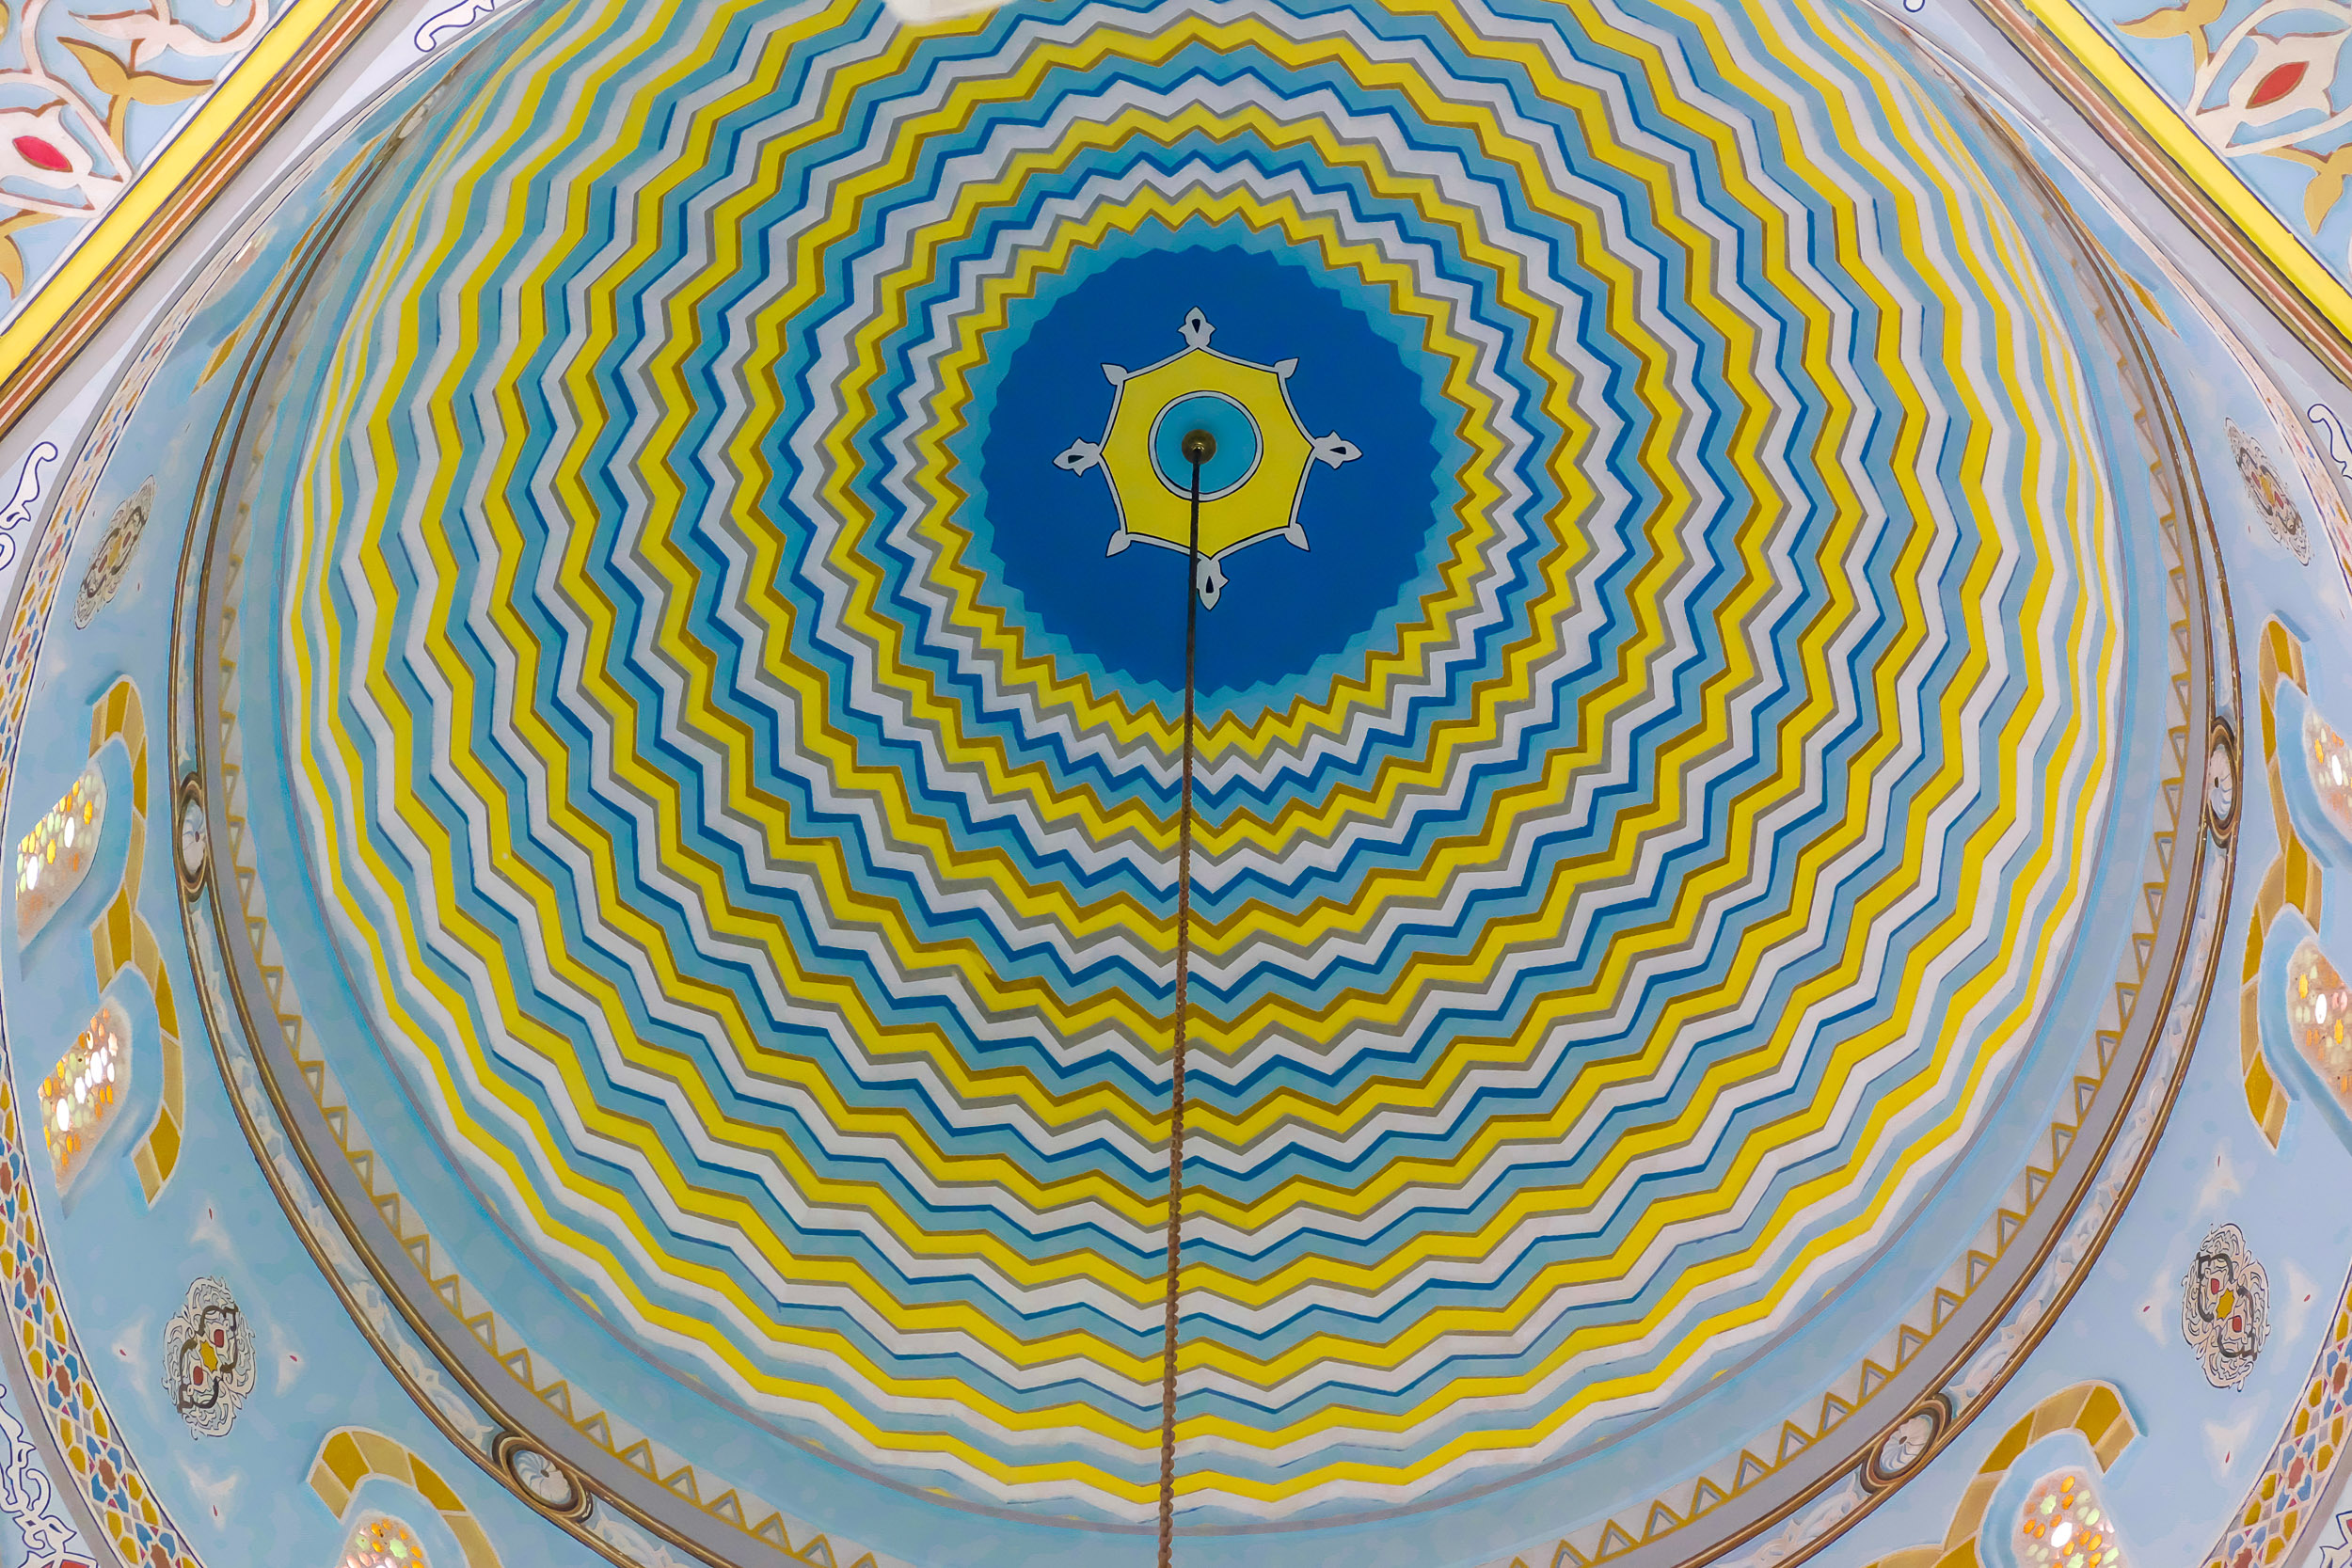 2 ceiling of mosque.jpg